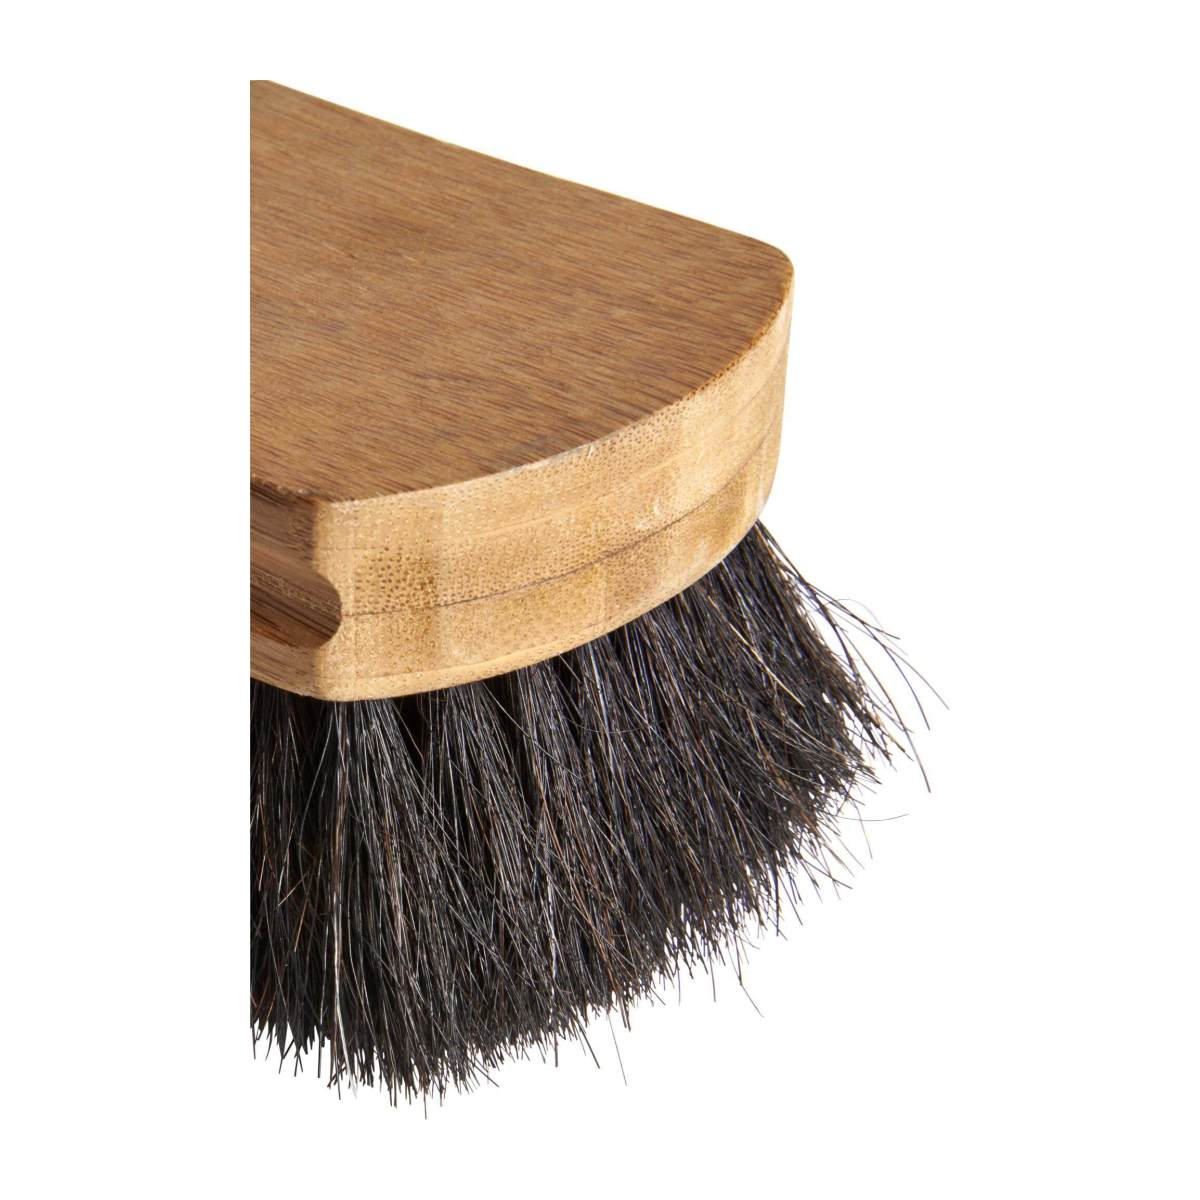 Cleaning brush n°5